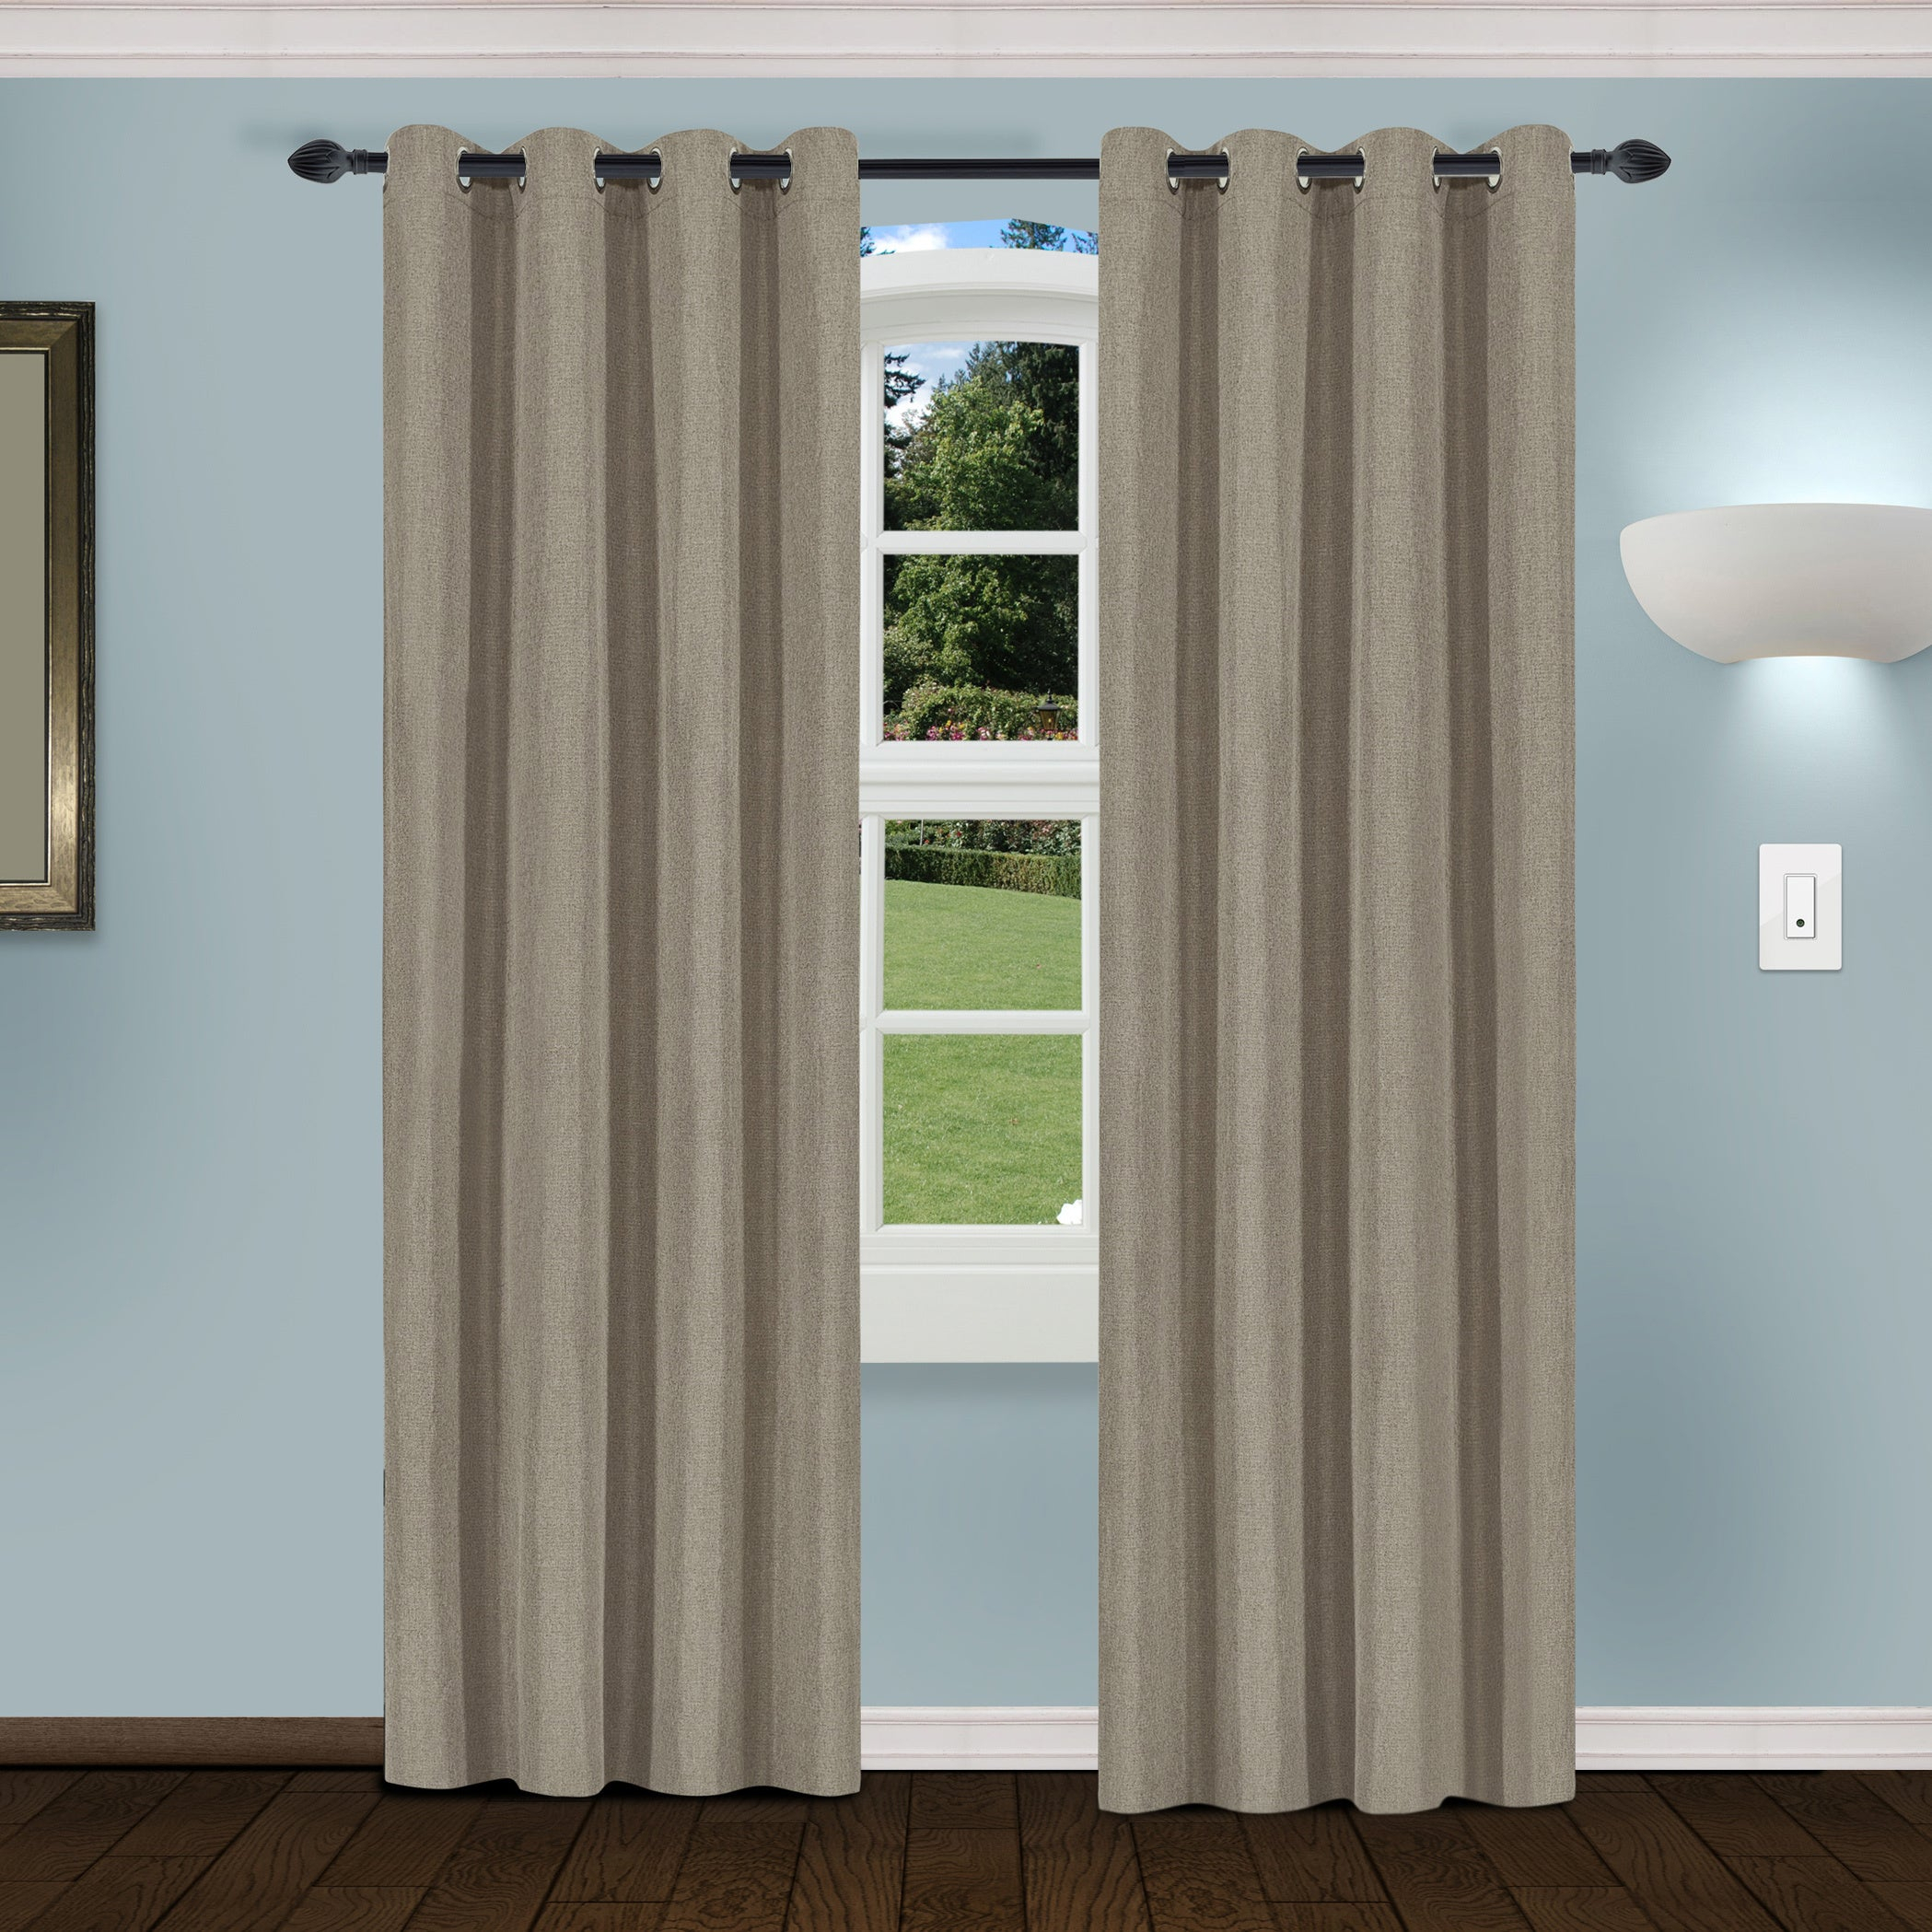 Superior Linen Insulated Thermal Blackout Grommet Curtain Panel Pair Intended For Insulated Thermal Blackout Curtain Panel Pairs (View 16 of 20)